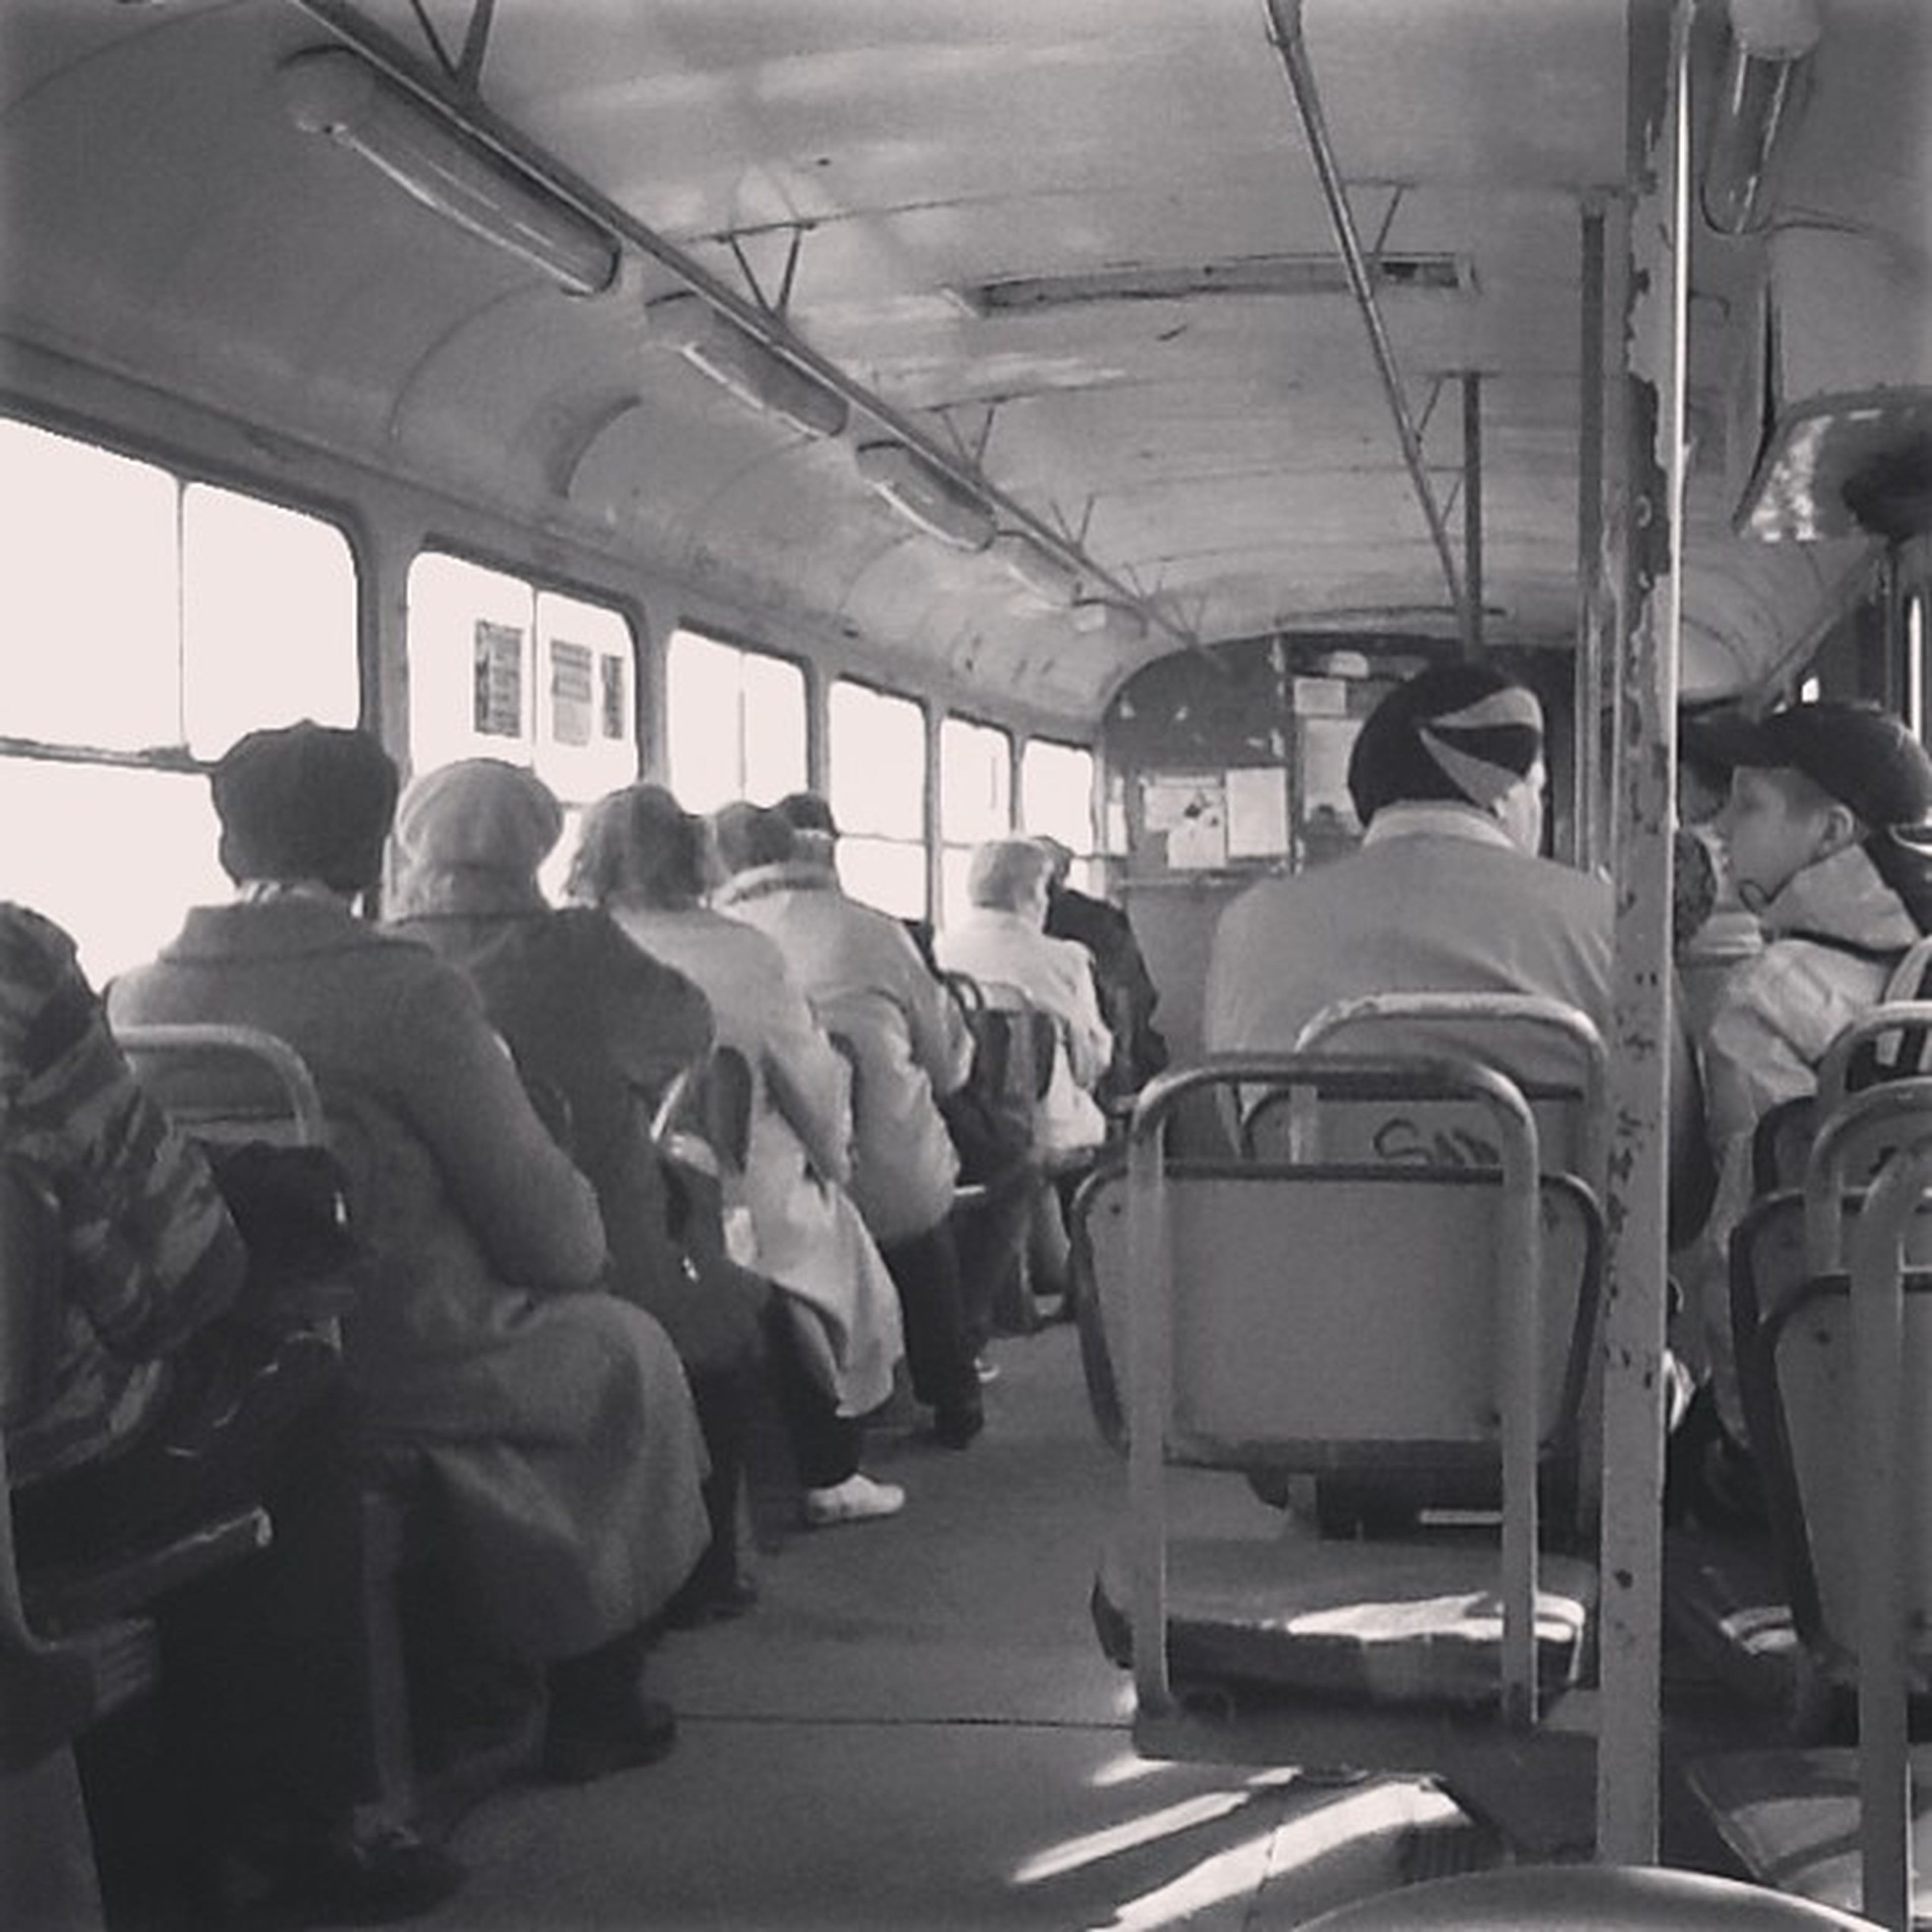 men, indoors, transportation, lifestyles, person, mode of transport, public transportation, travel, passenger, large group of people, journey, sitting, leisure activity, rear view, vehicle interior, medium group of people, vehicle seat, occupation, casual clothing